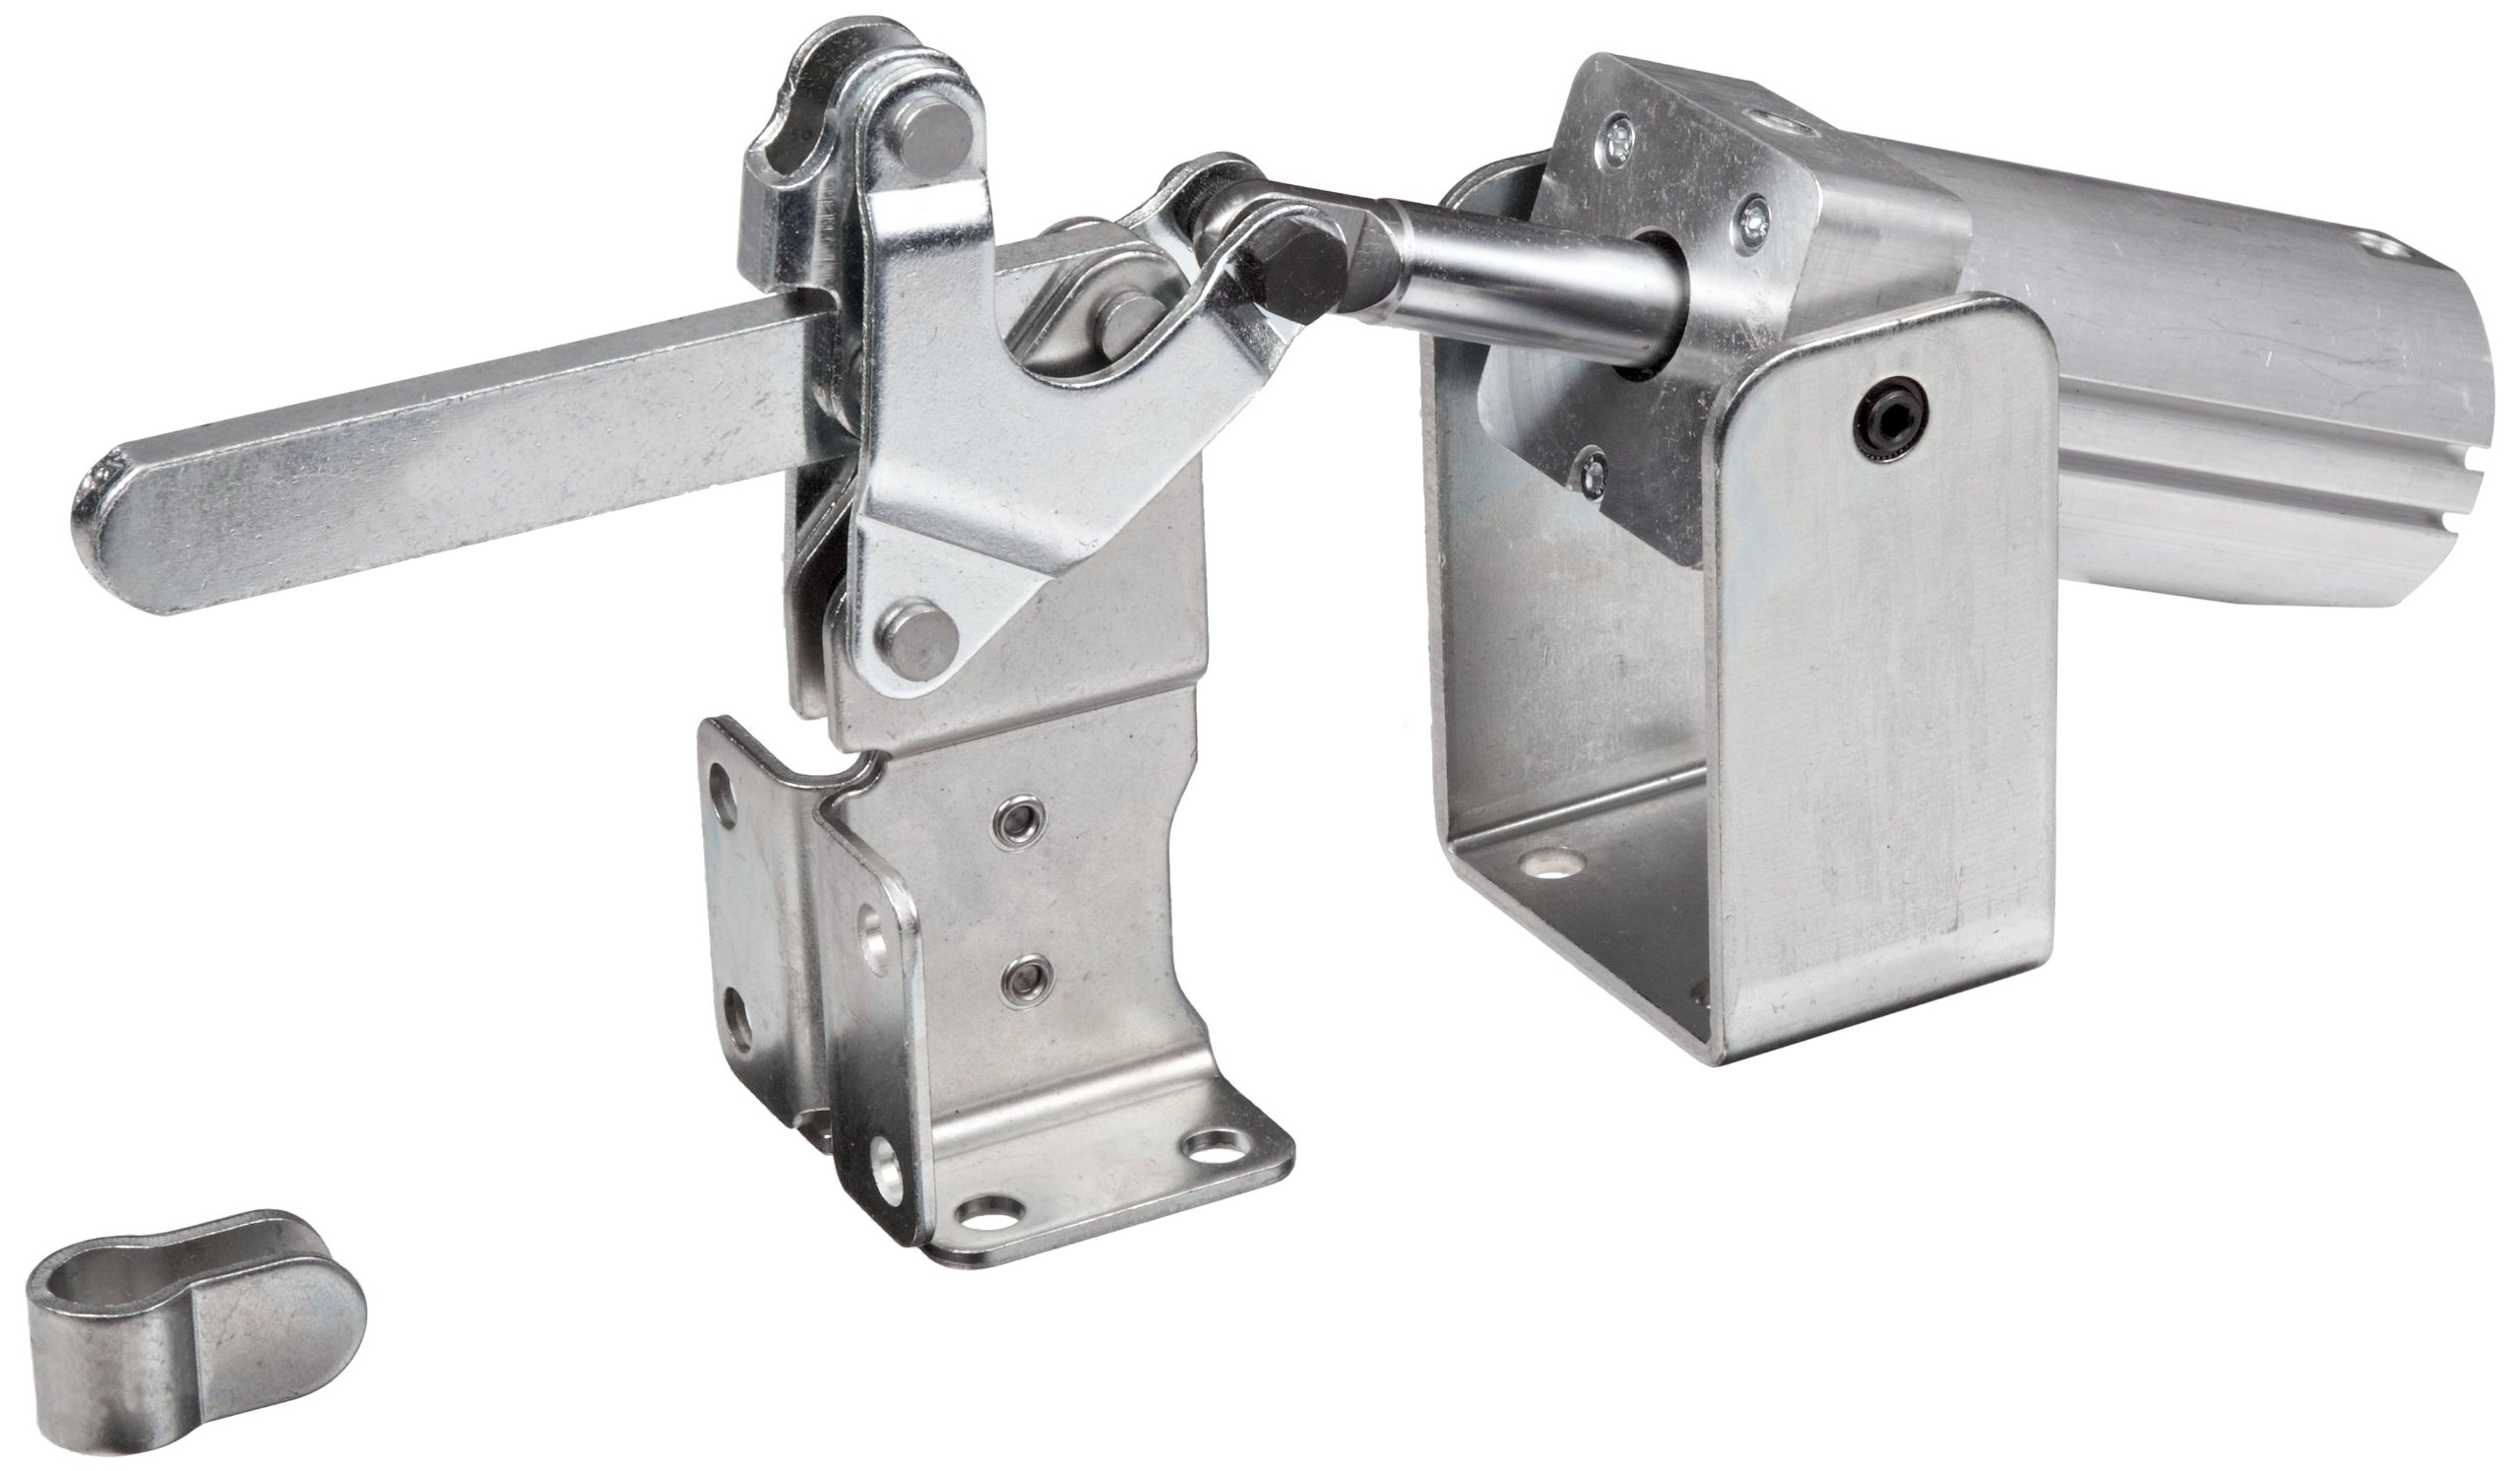 DE-STA-CO 827-S Pneumatic Hold Down Clamp